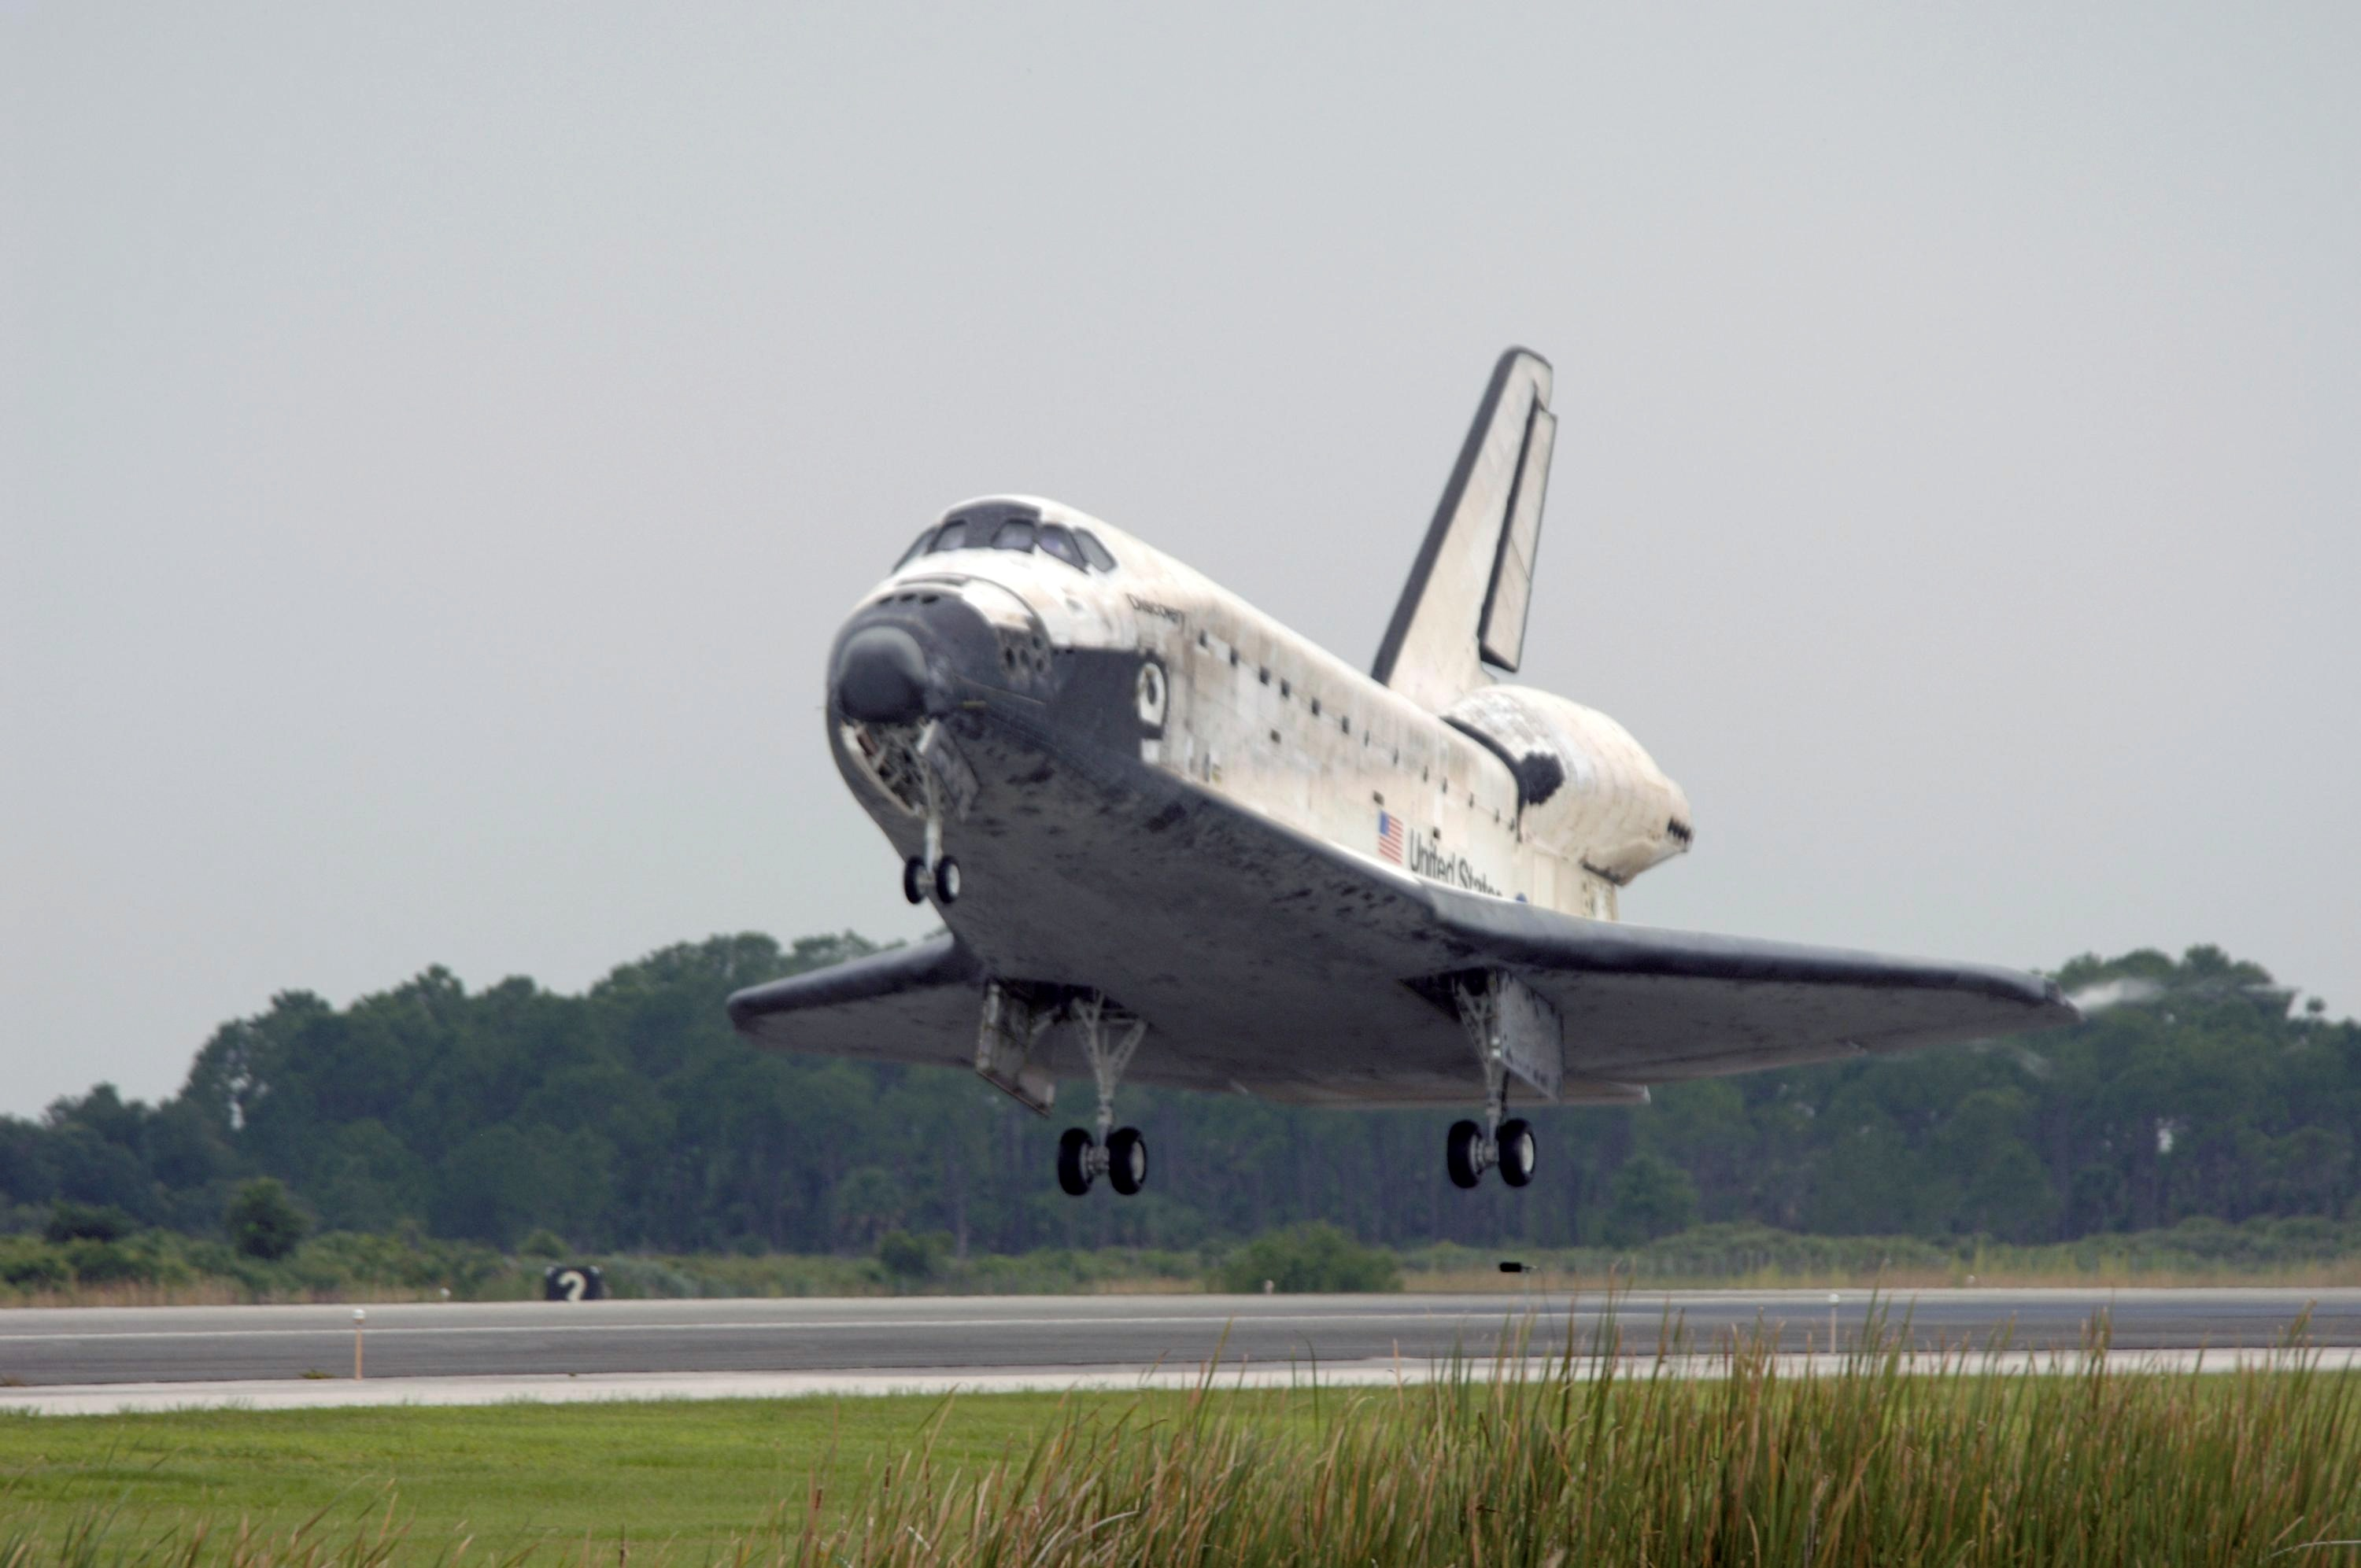 space shuttle landing apk - photo #38